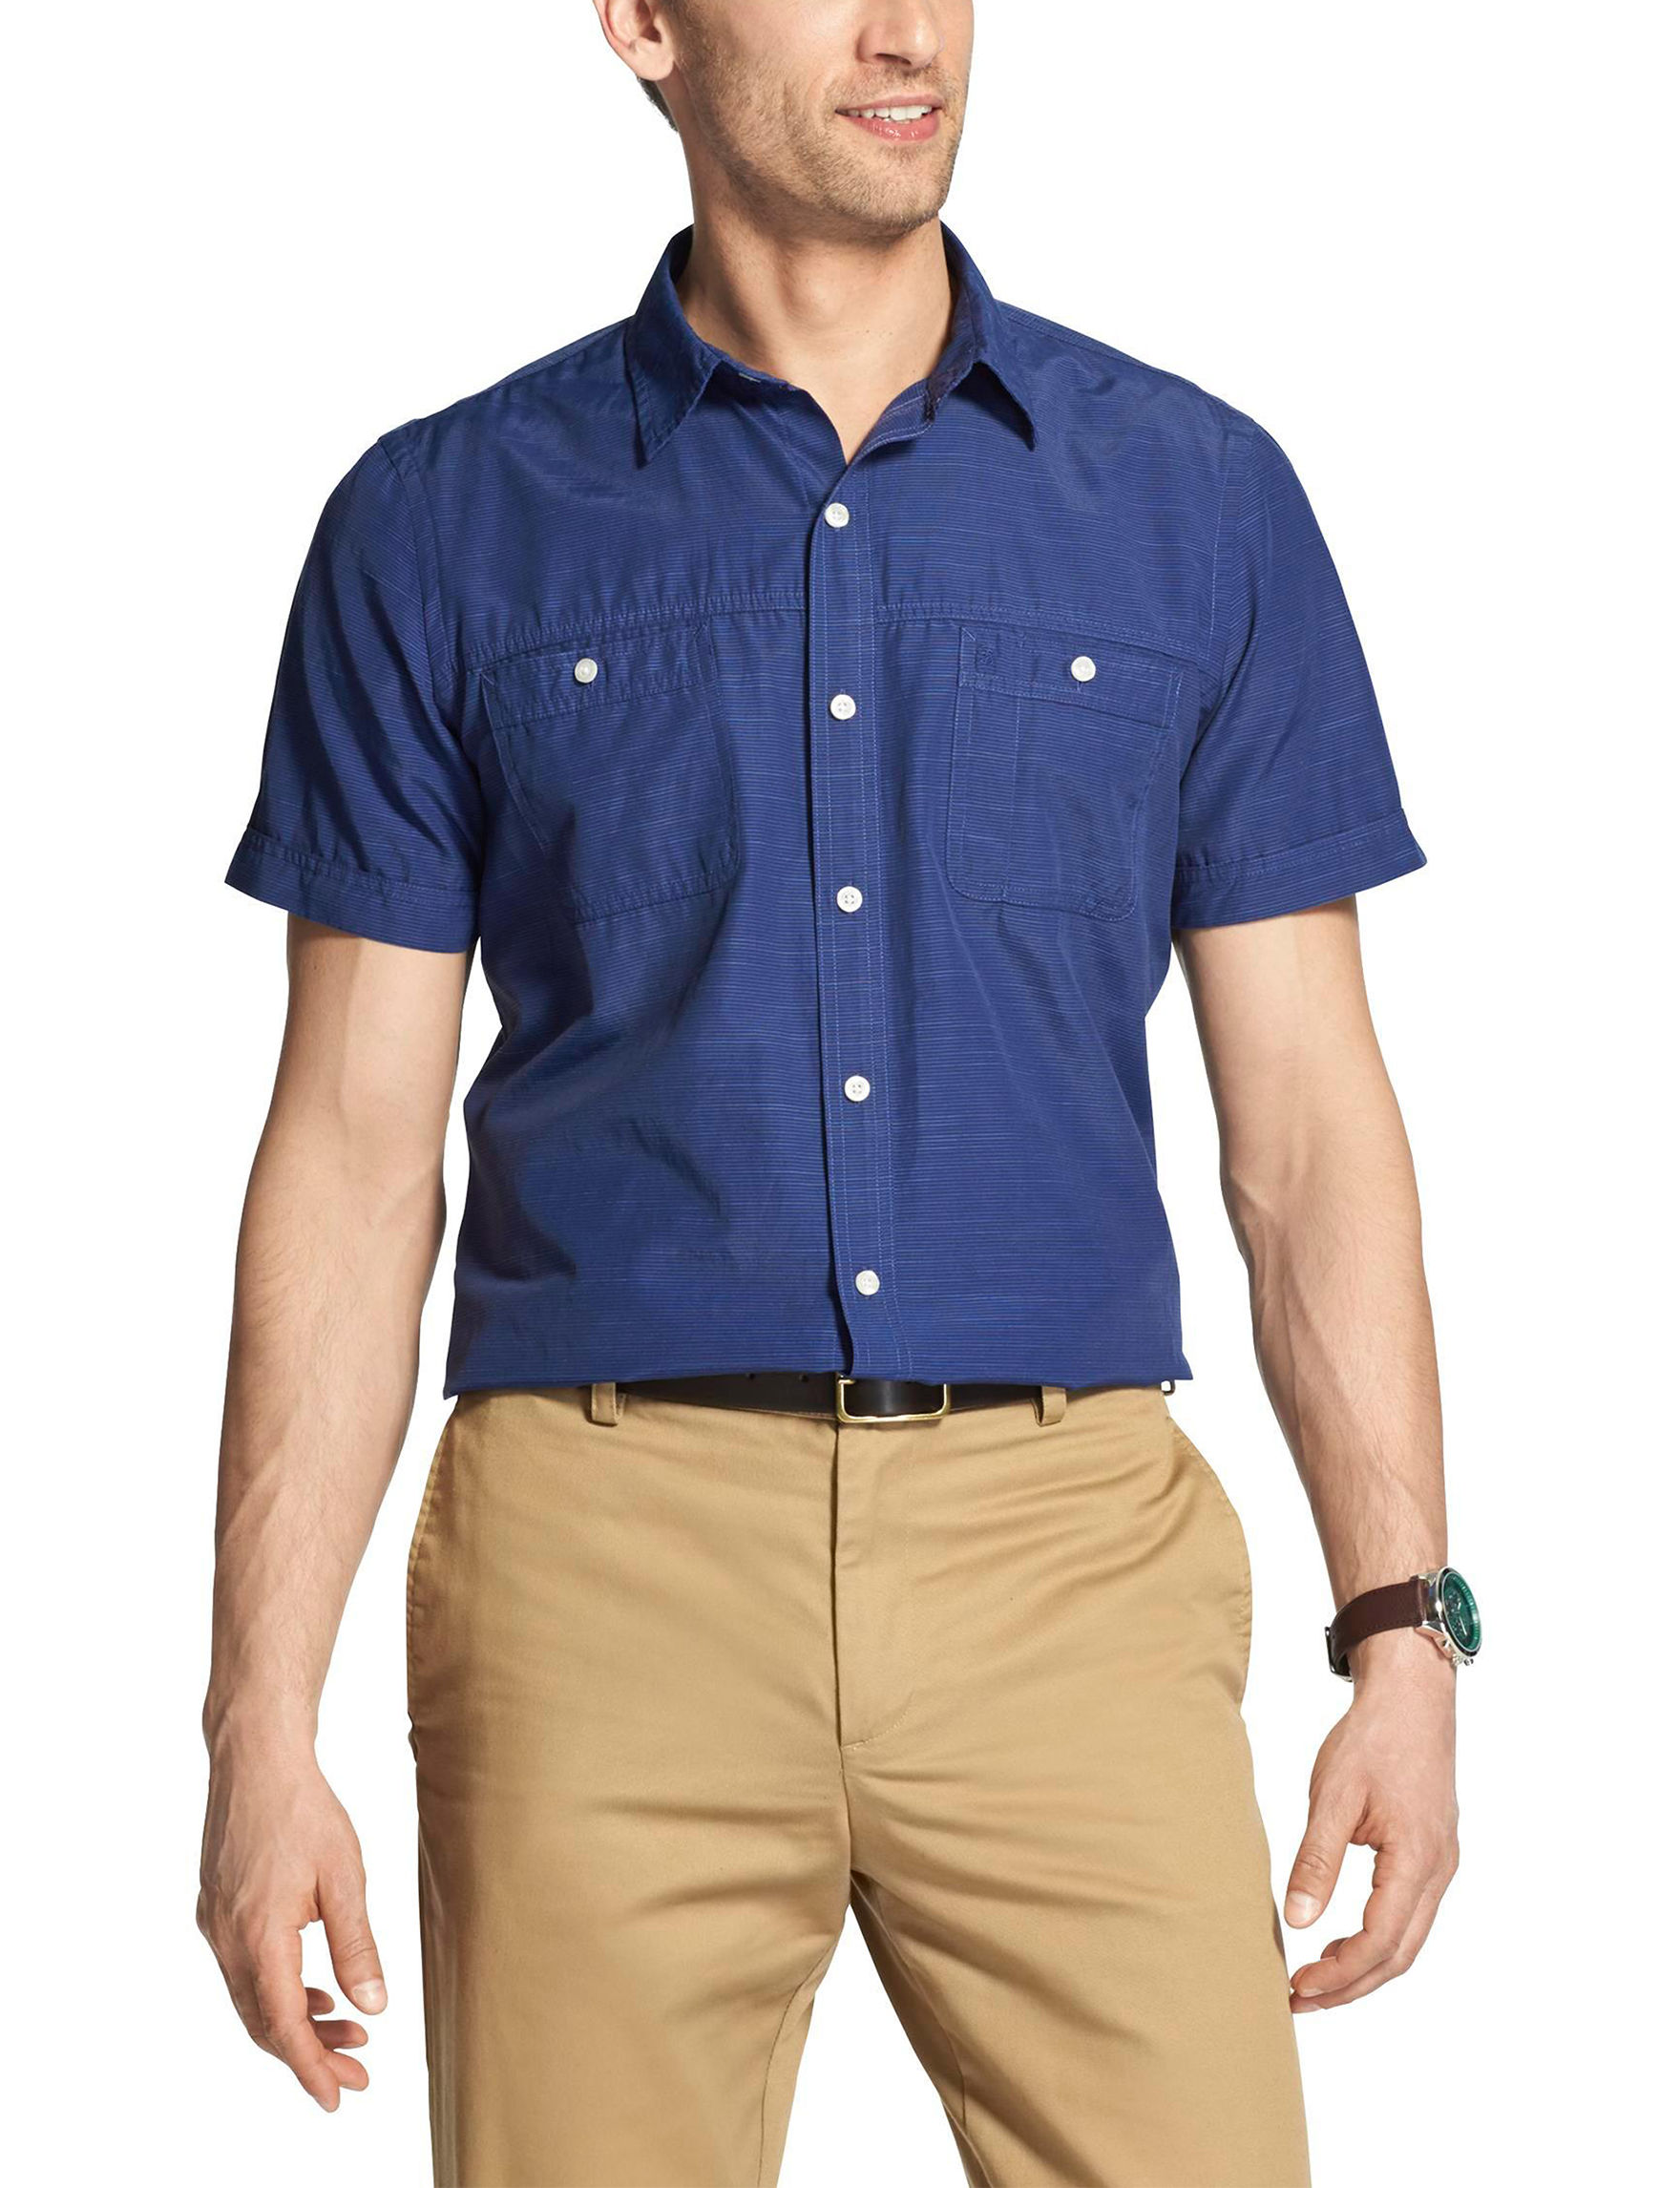 Izod Navy Casual Button Down Shirts